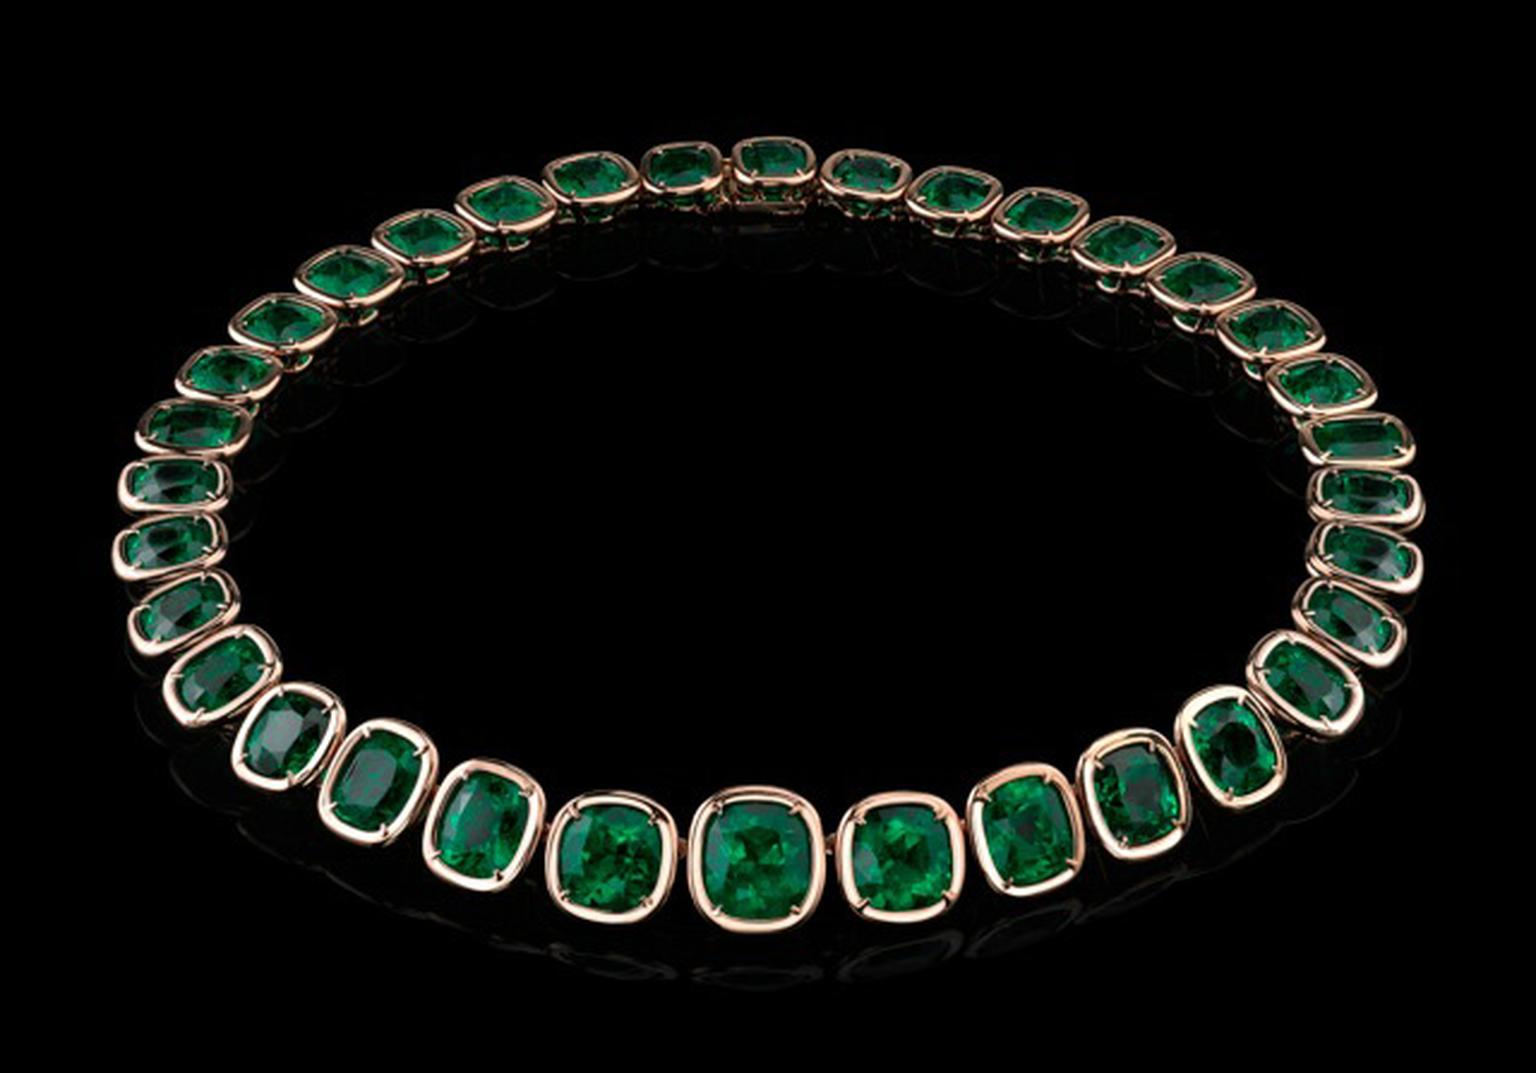 Cushion-Emerald-Necklace-in-the-Style-of-Jolie.jpg